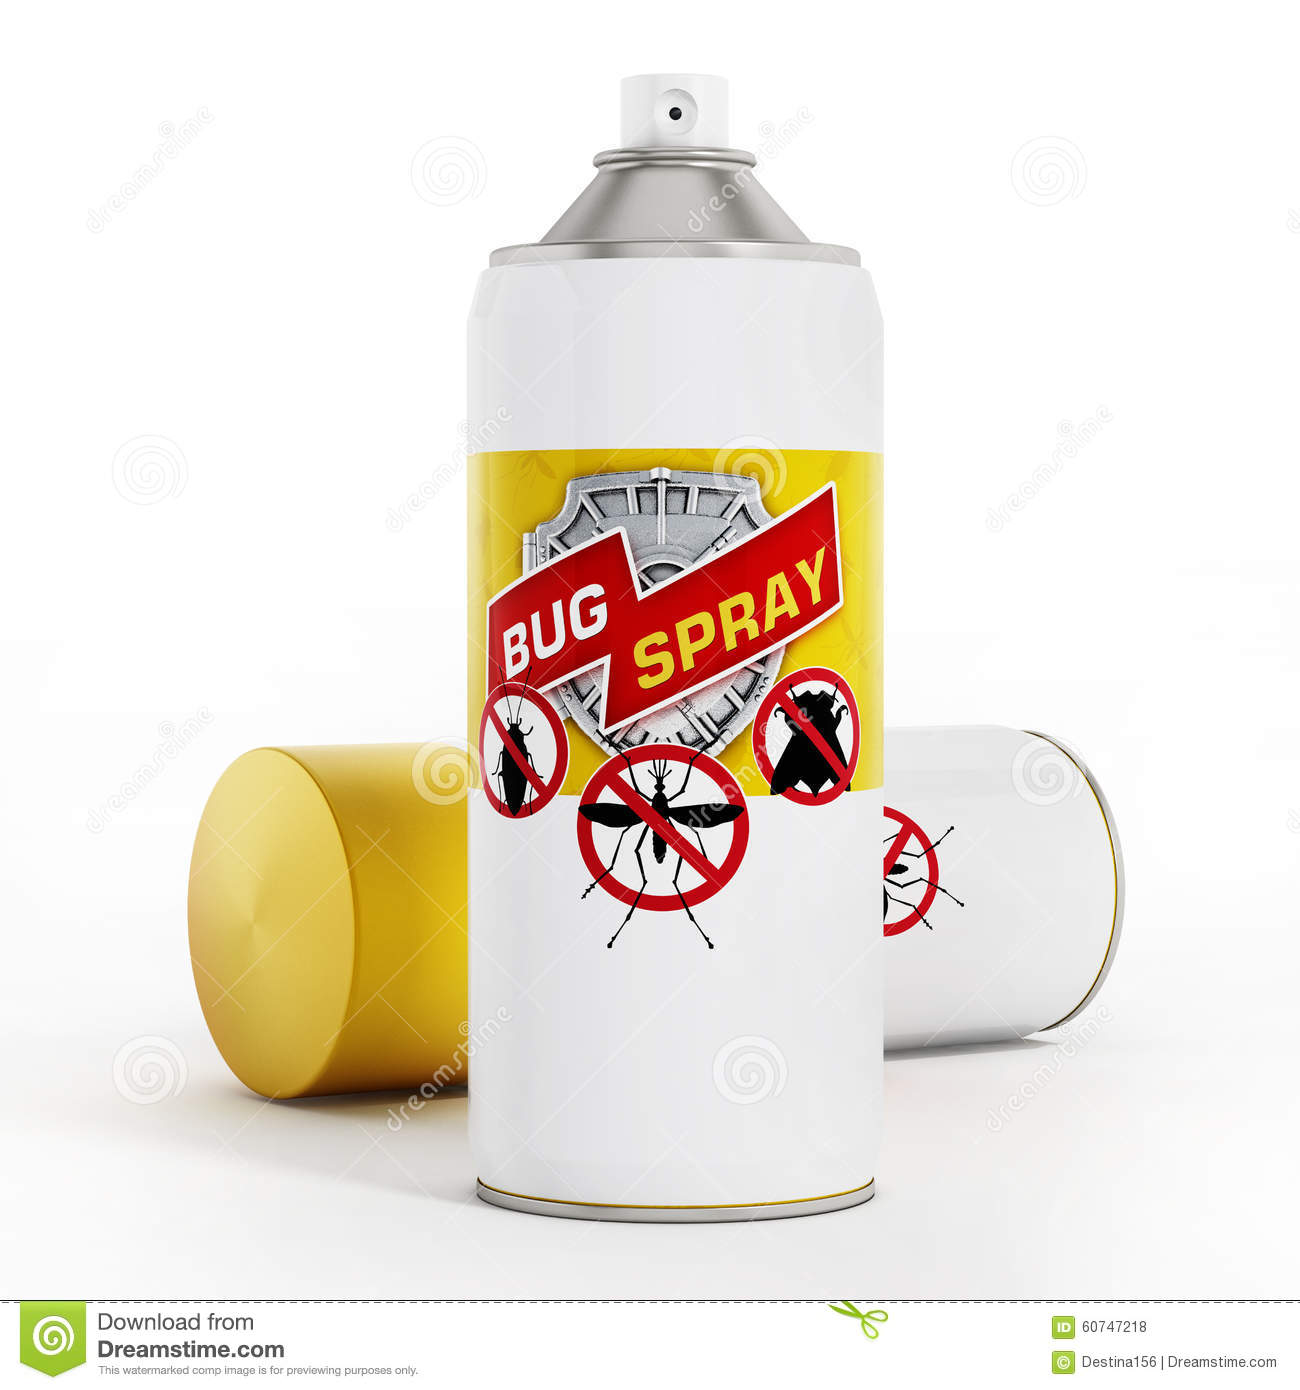 Sprays anti insectes illustration stock image 60747218 for Peinture anti mouche